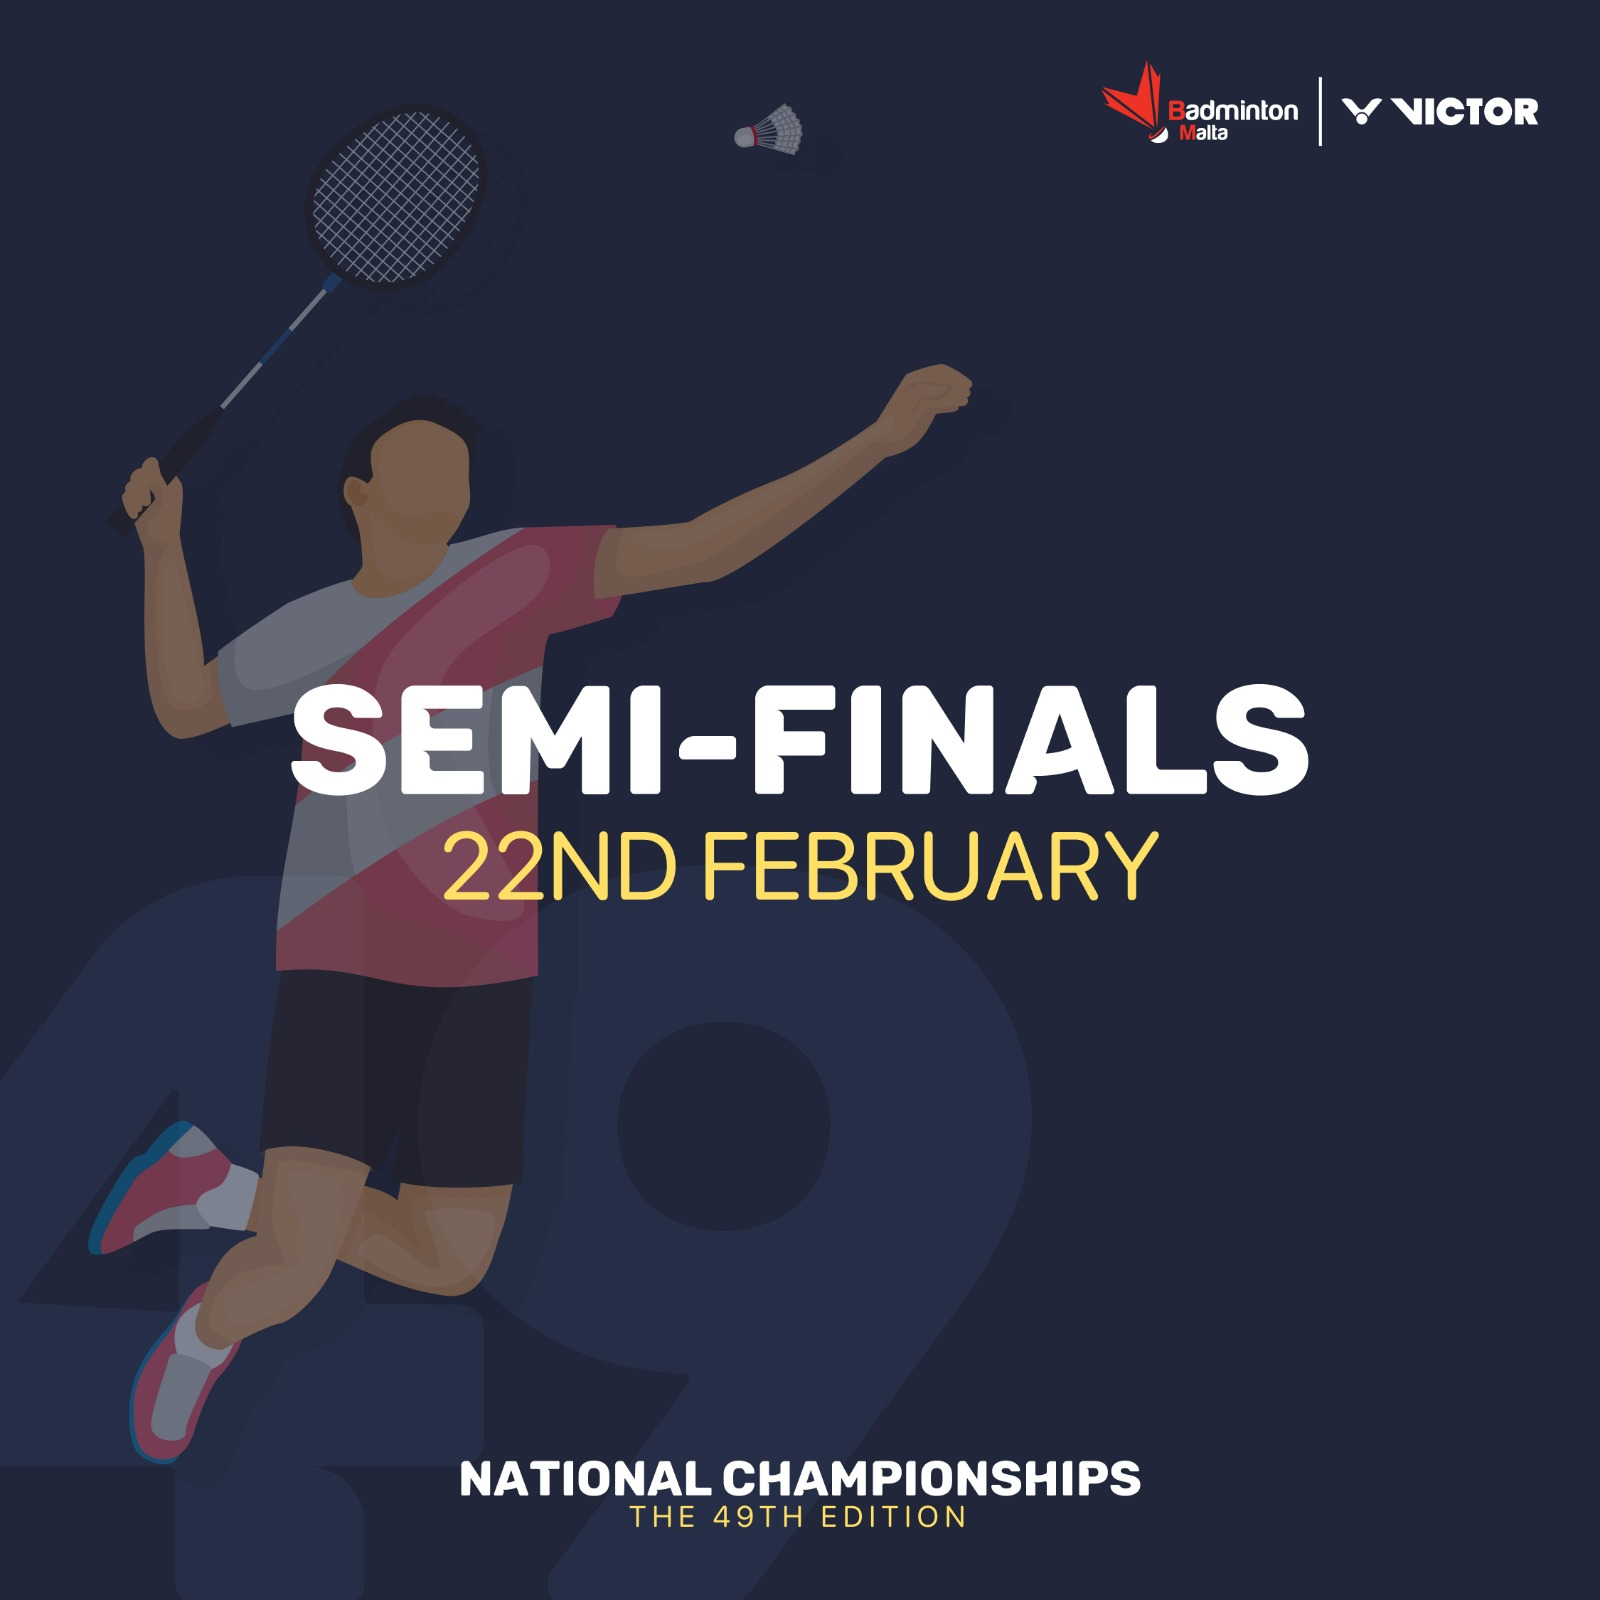 List of Semi Finals is now completed